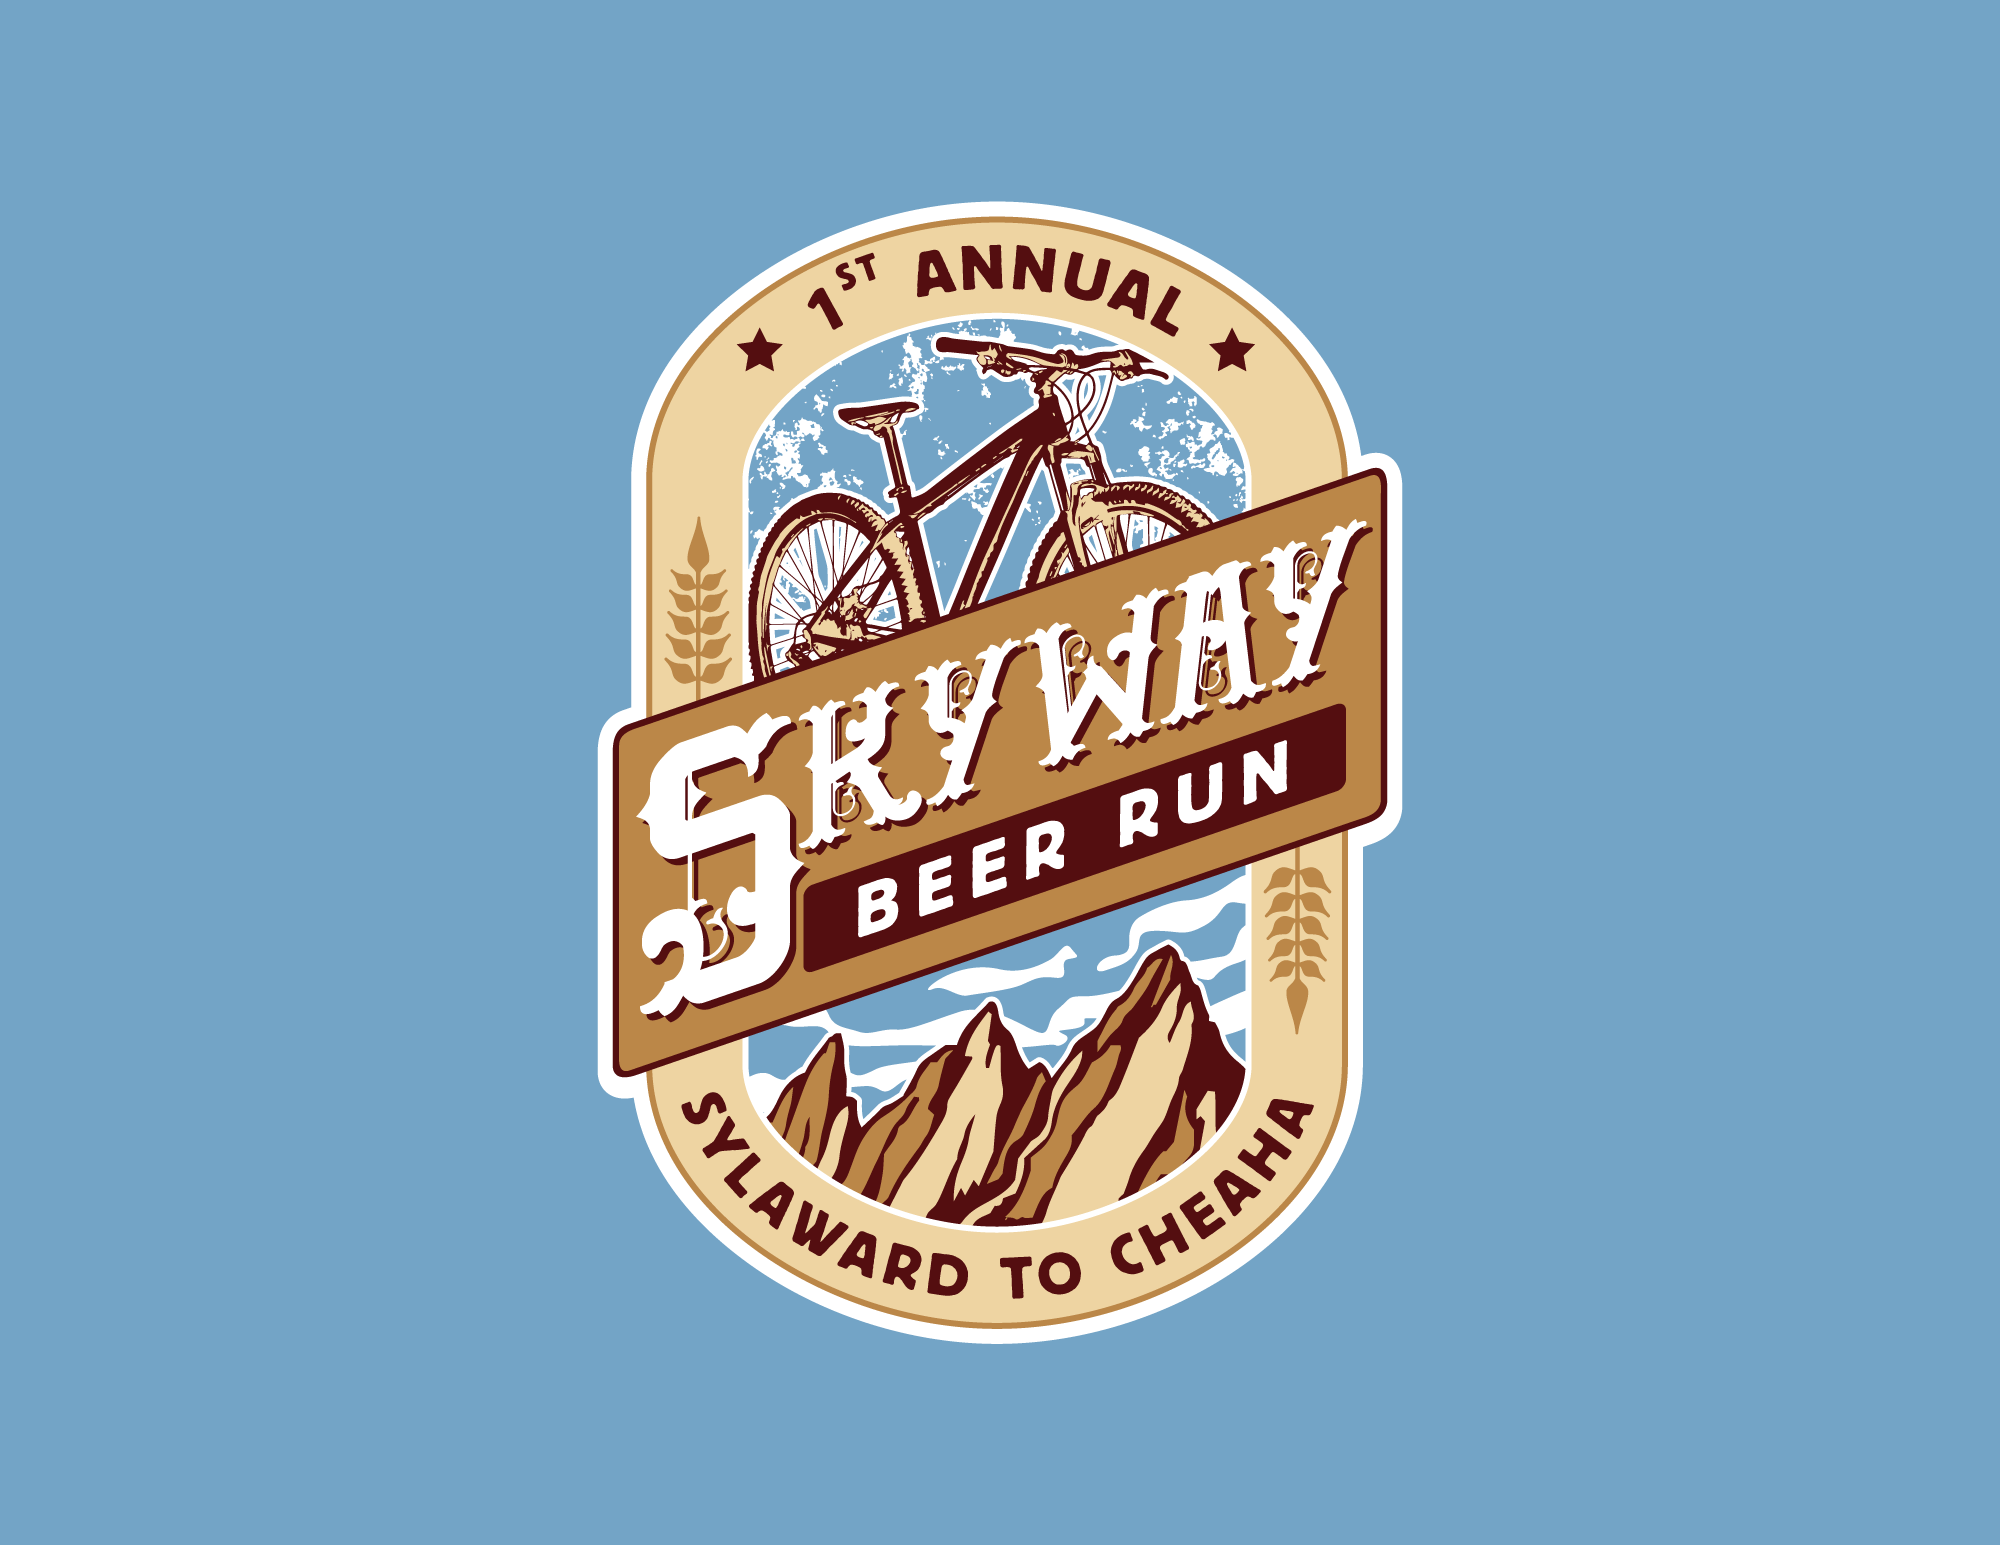 skyway-john-shirt